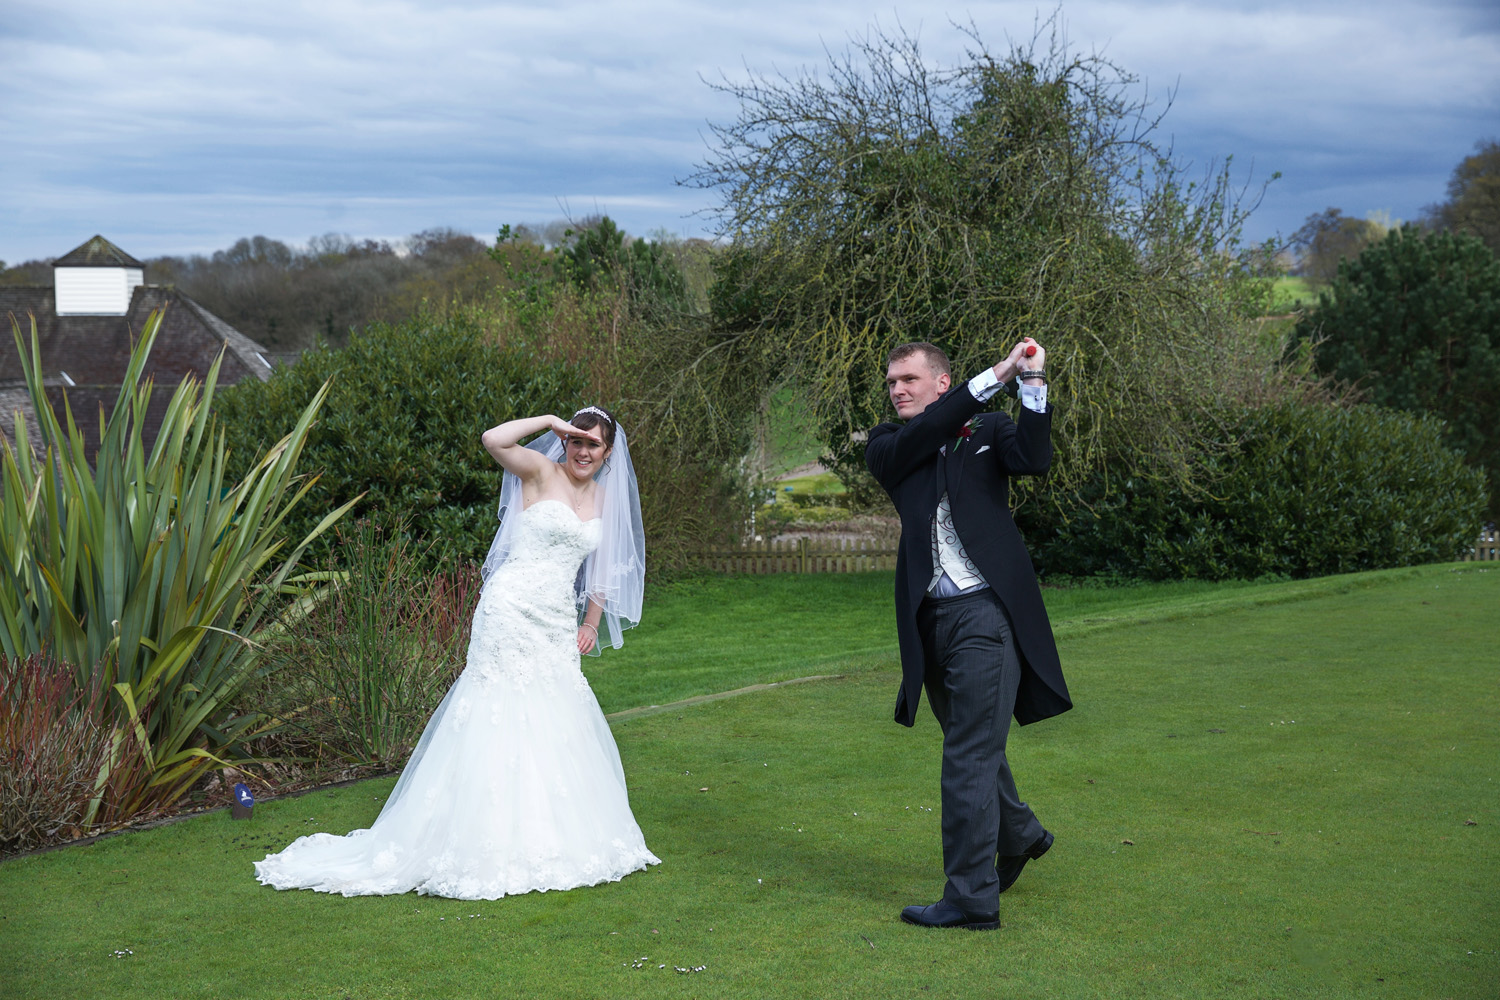 Sandford_Springs_Wedding_Photographer_Newbury_031.jpg